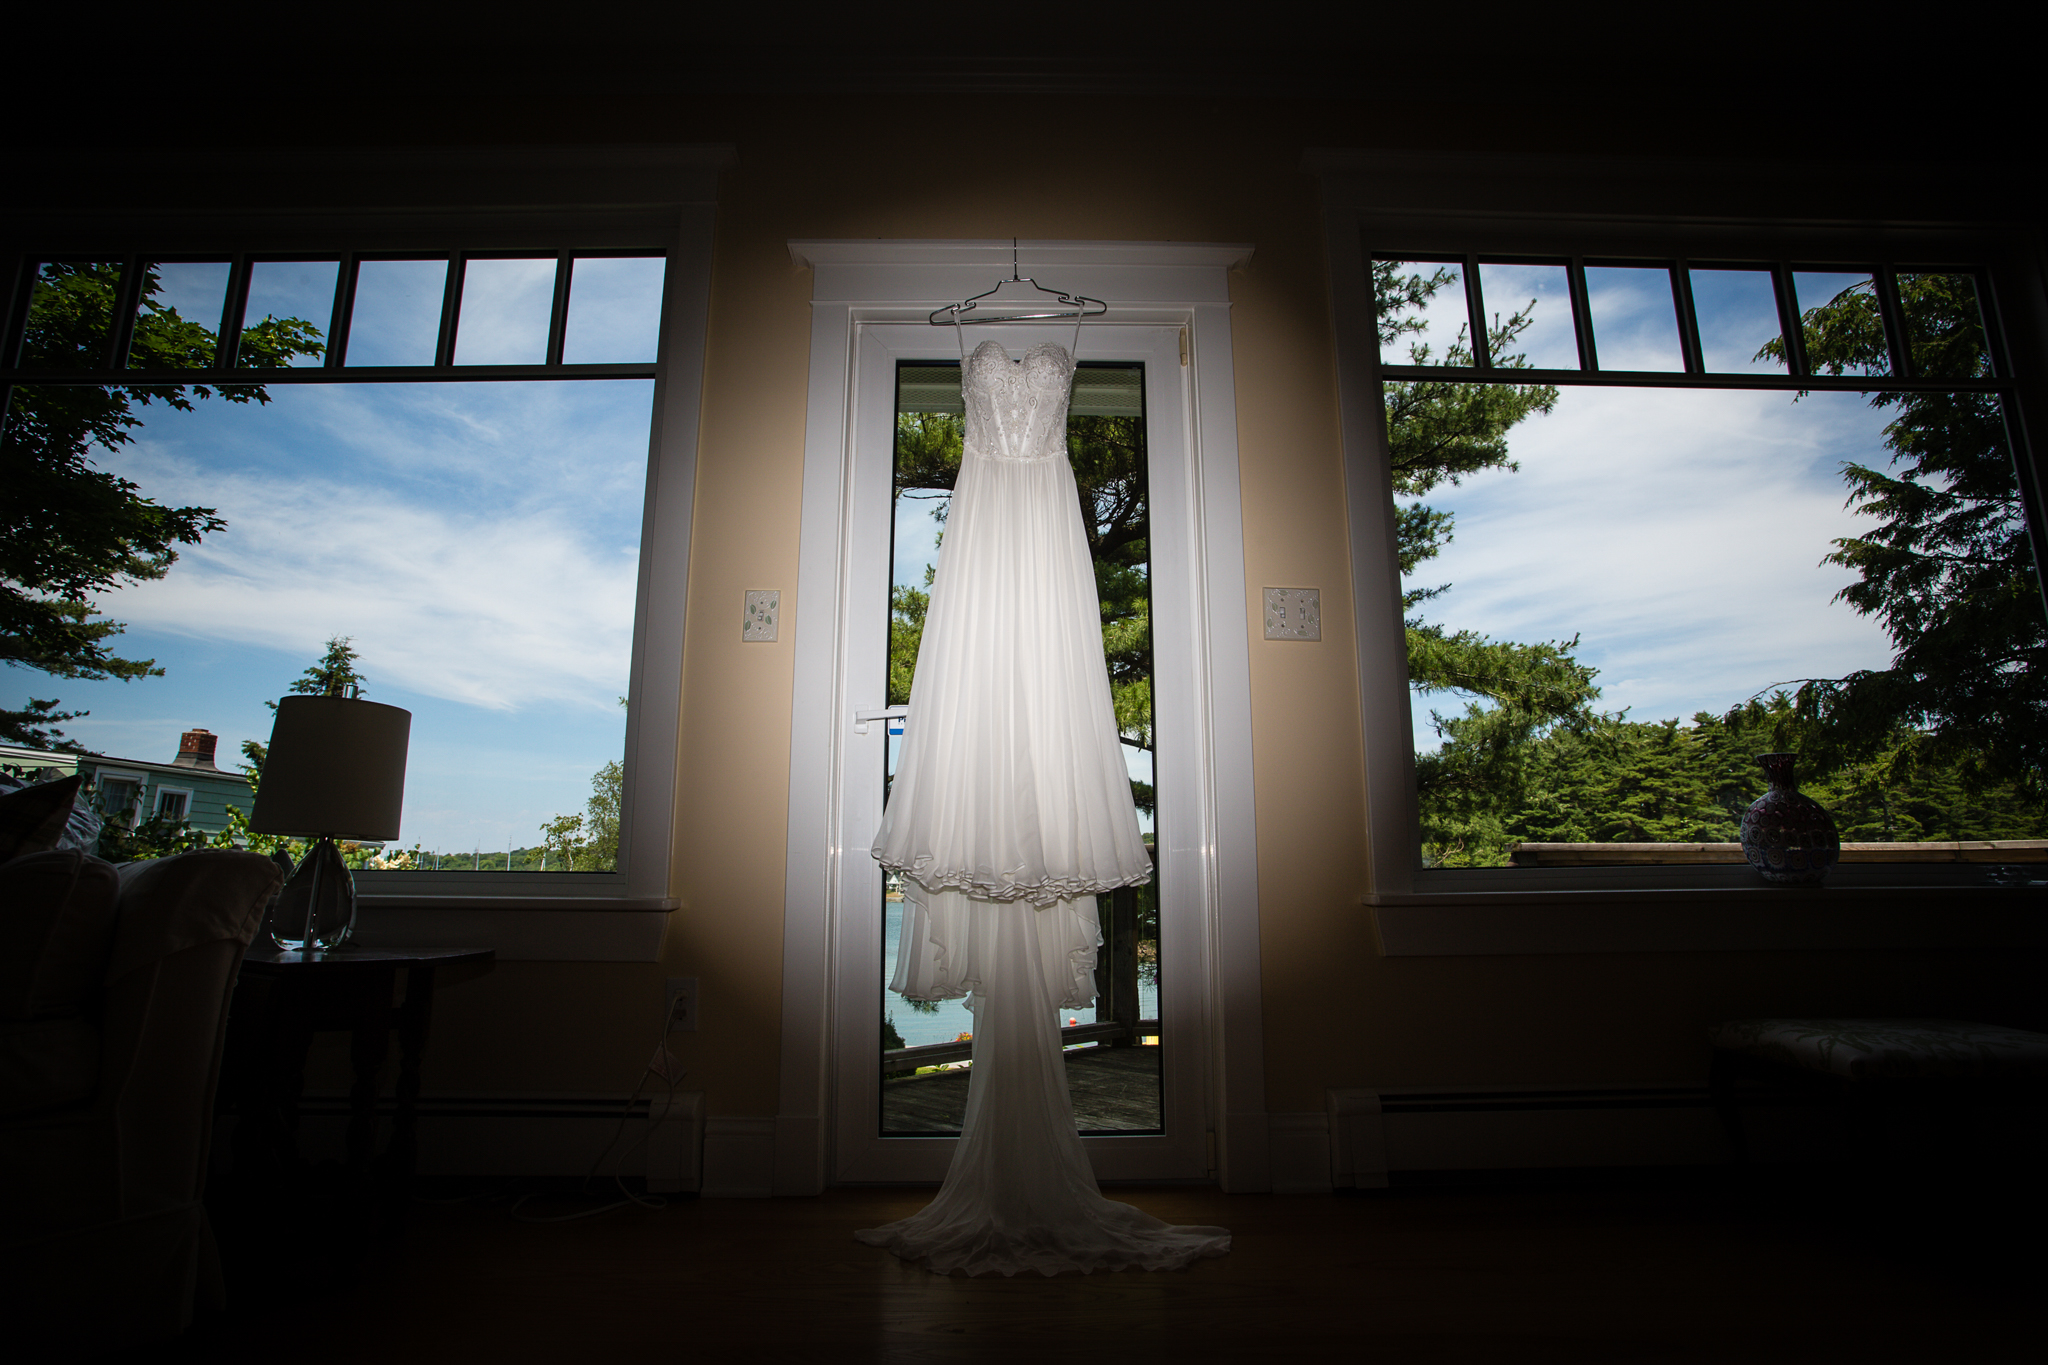 02-LORD-NELSON-WEDDING-VENUE-HALIFAX.jpg